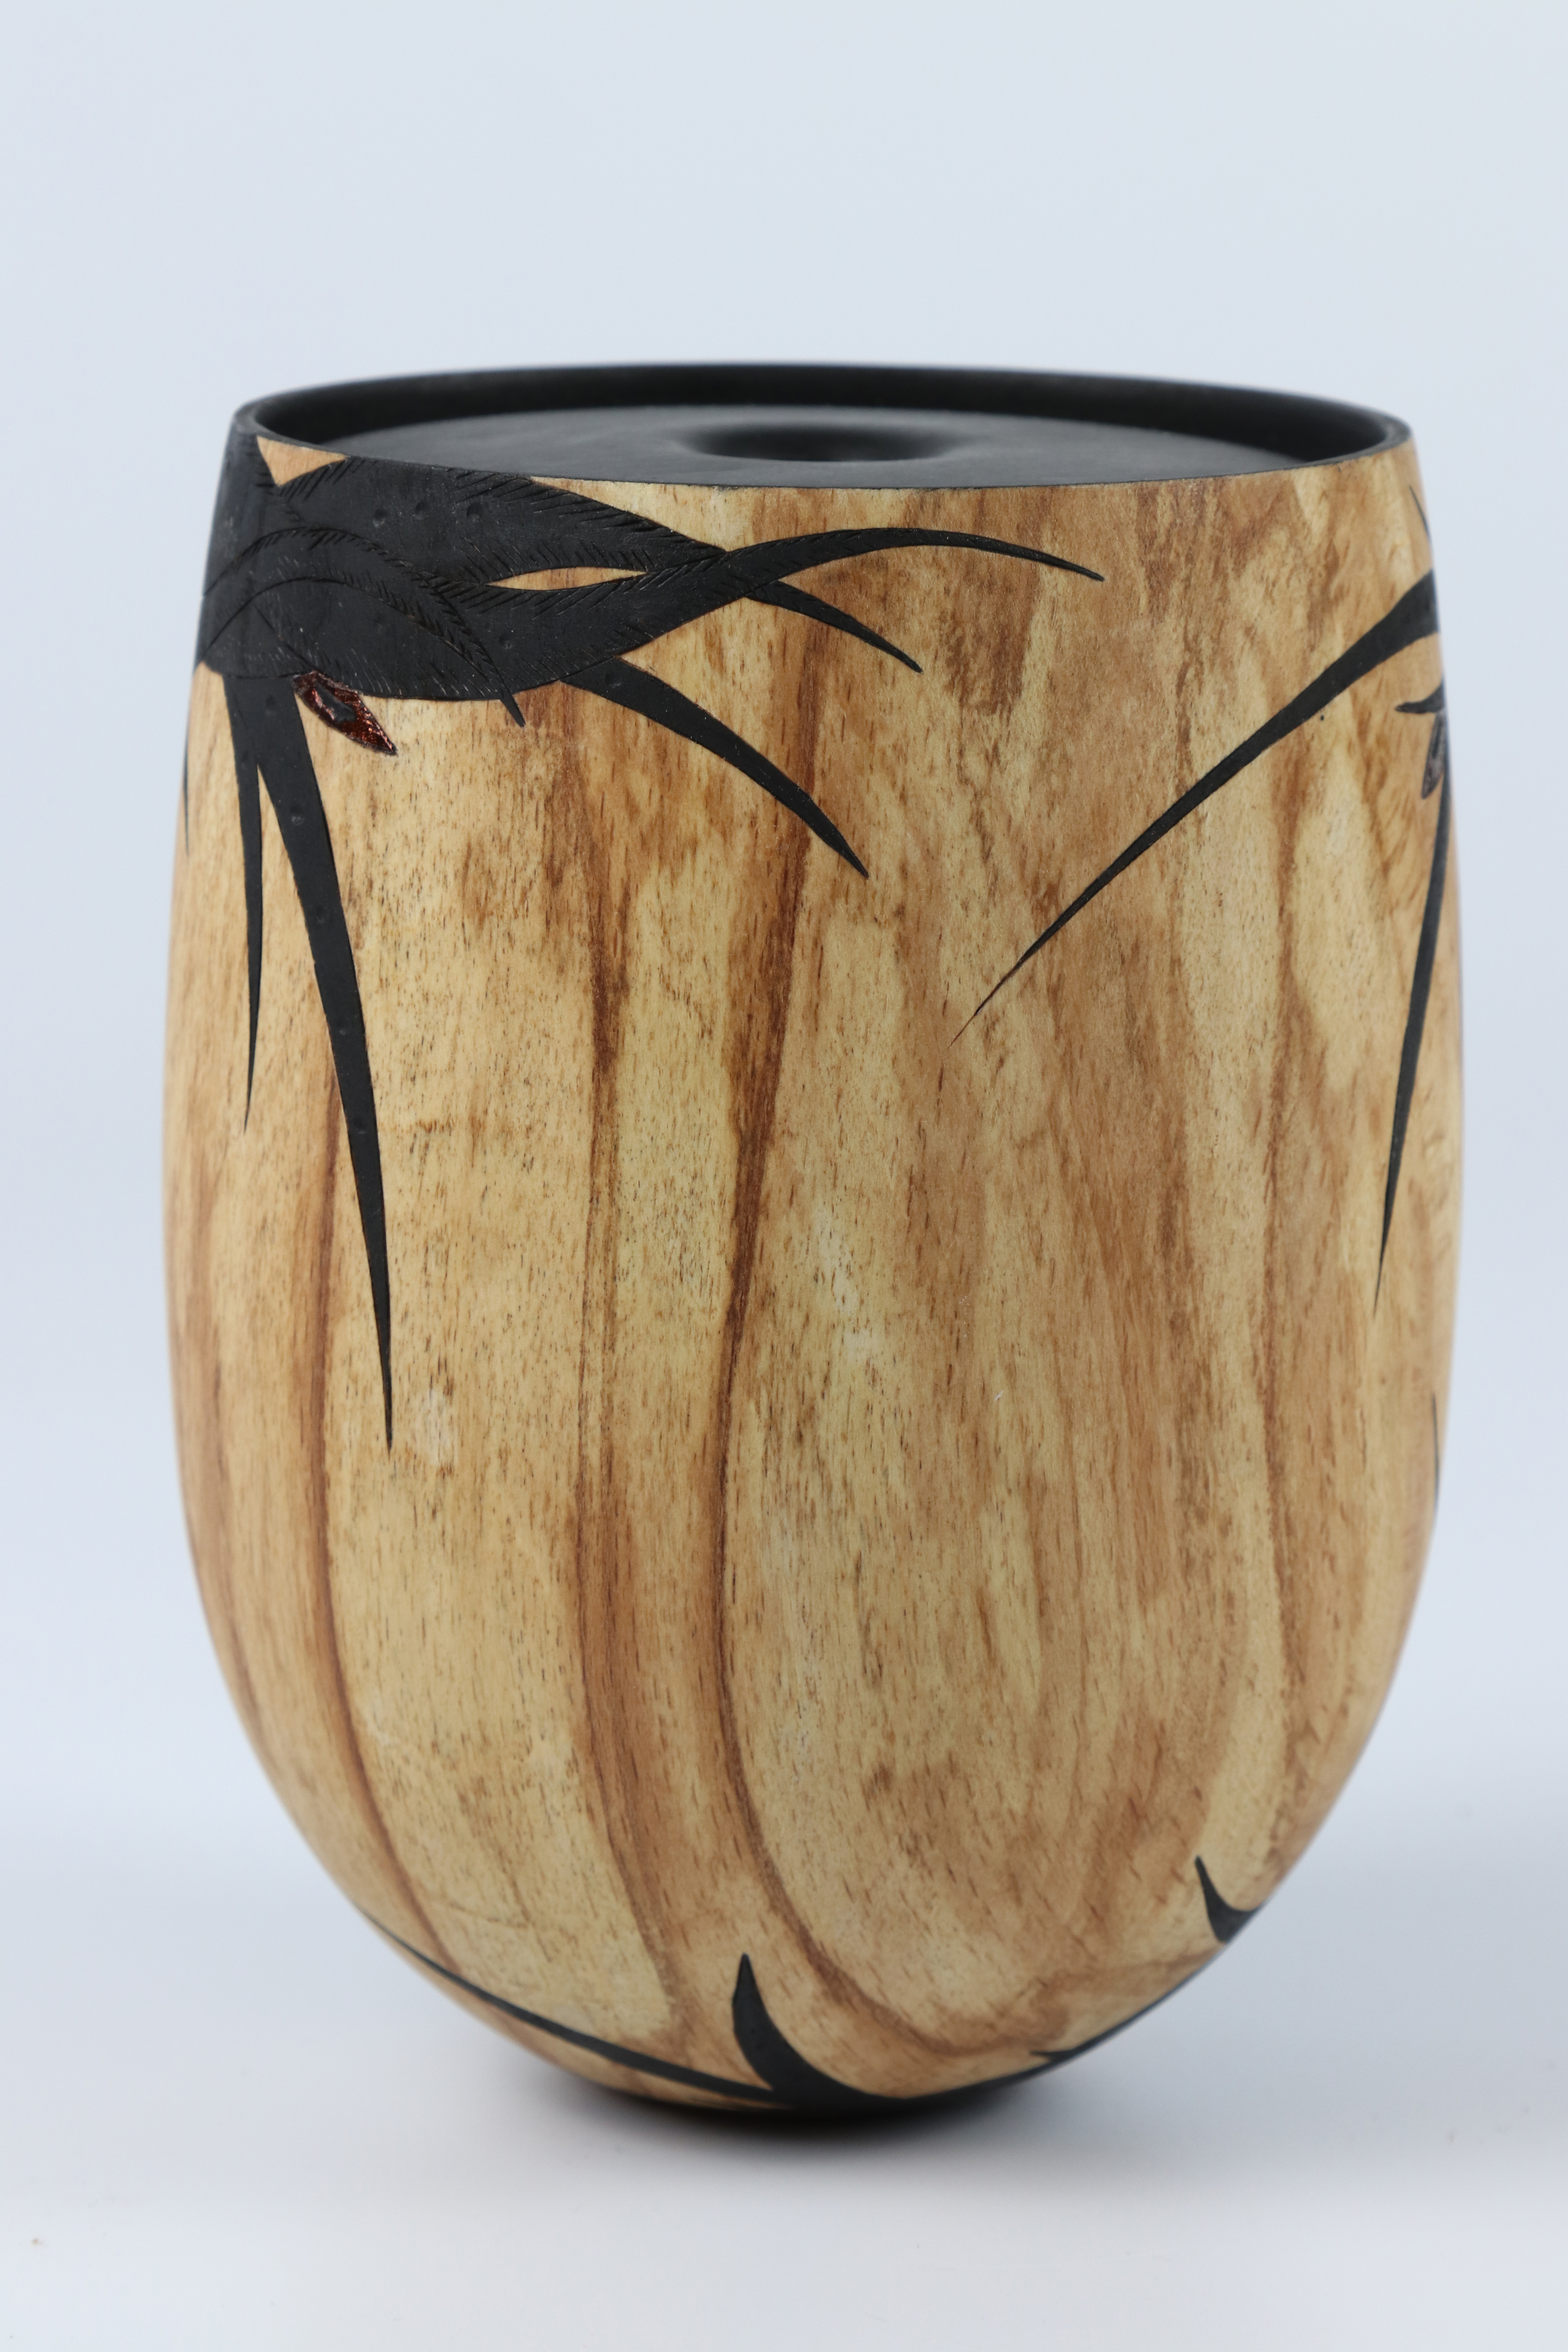 Lot 103 - Sally Burnett (UK) carved and coloured spalted beech hollow form 14x11cm. Signed